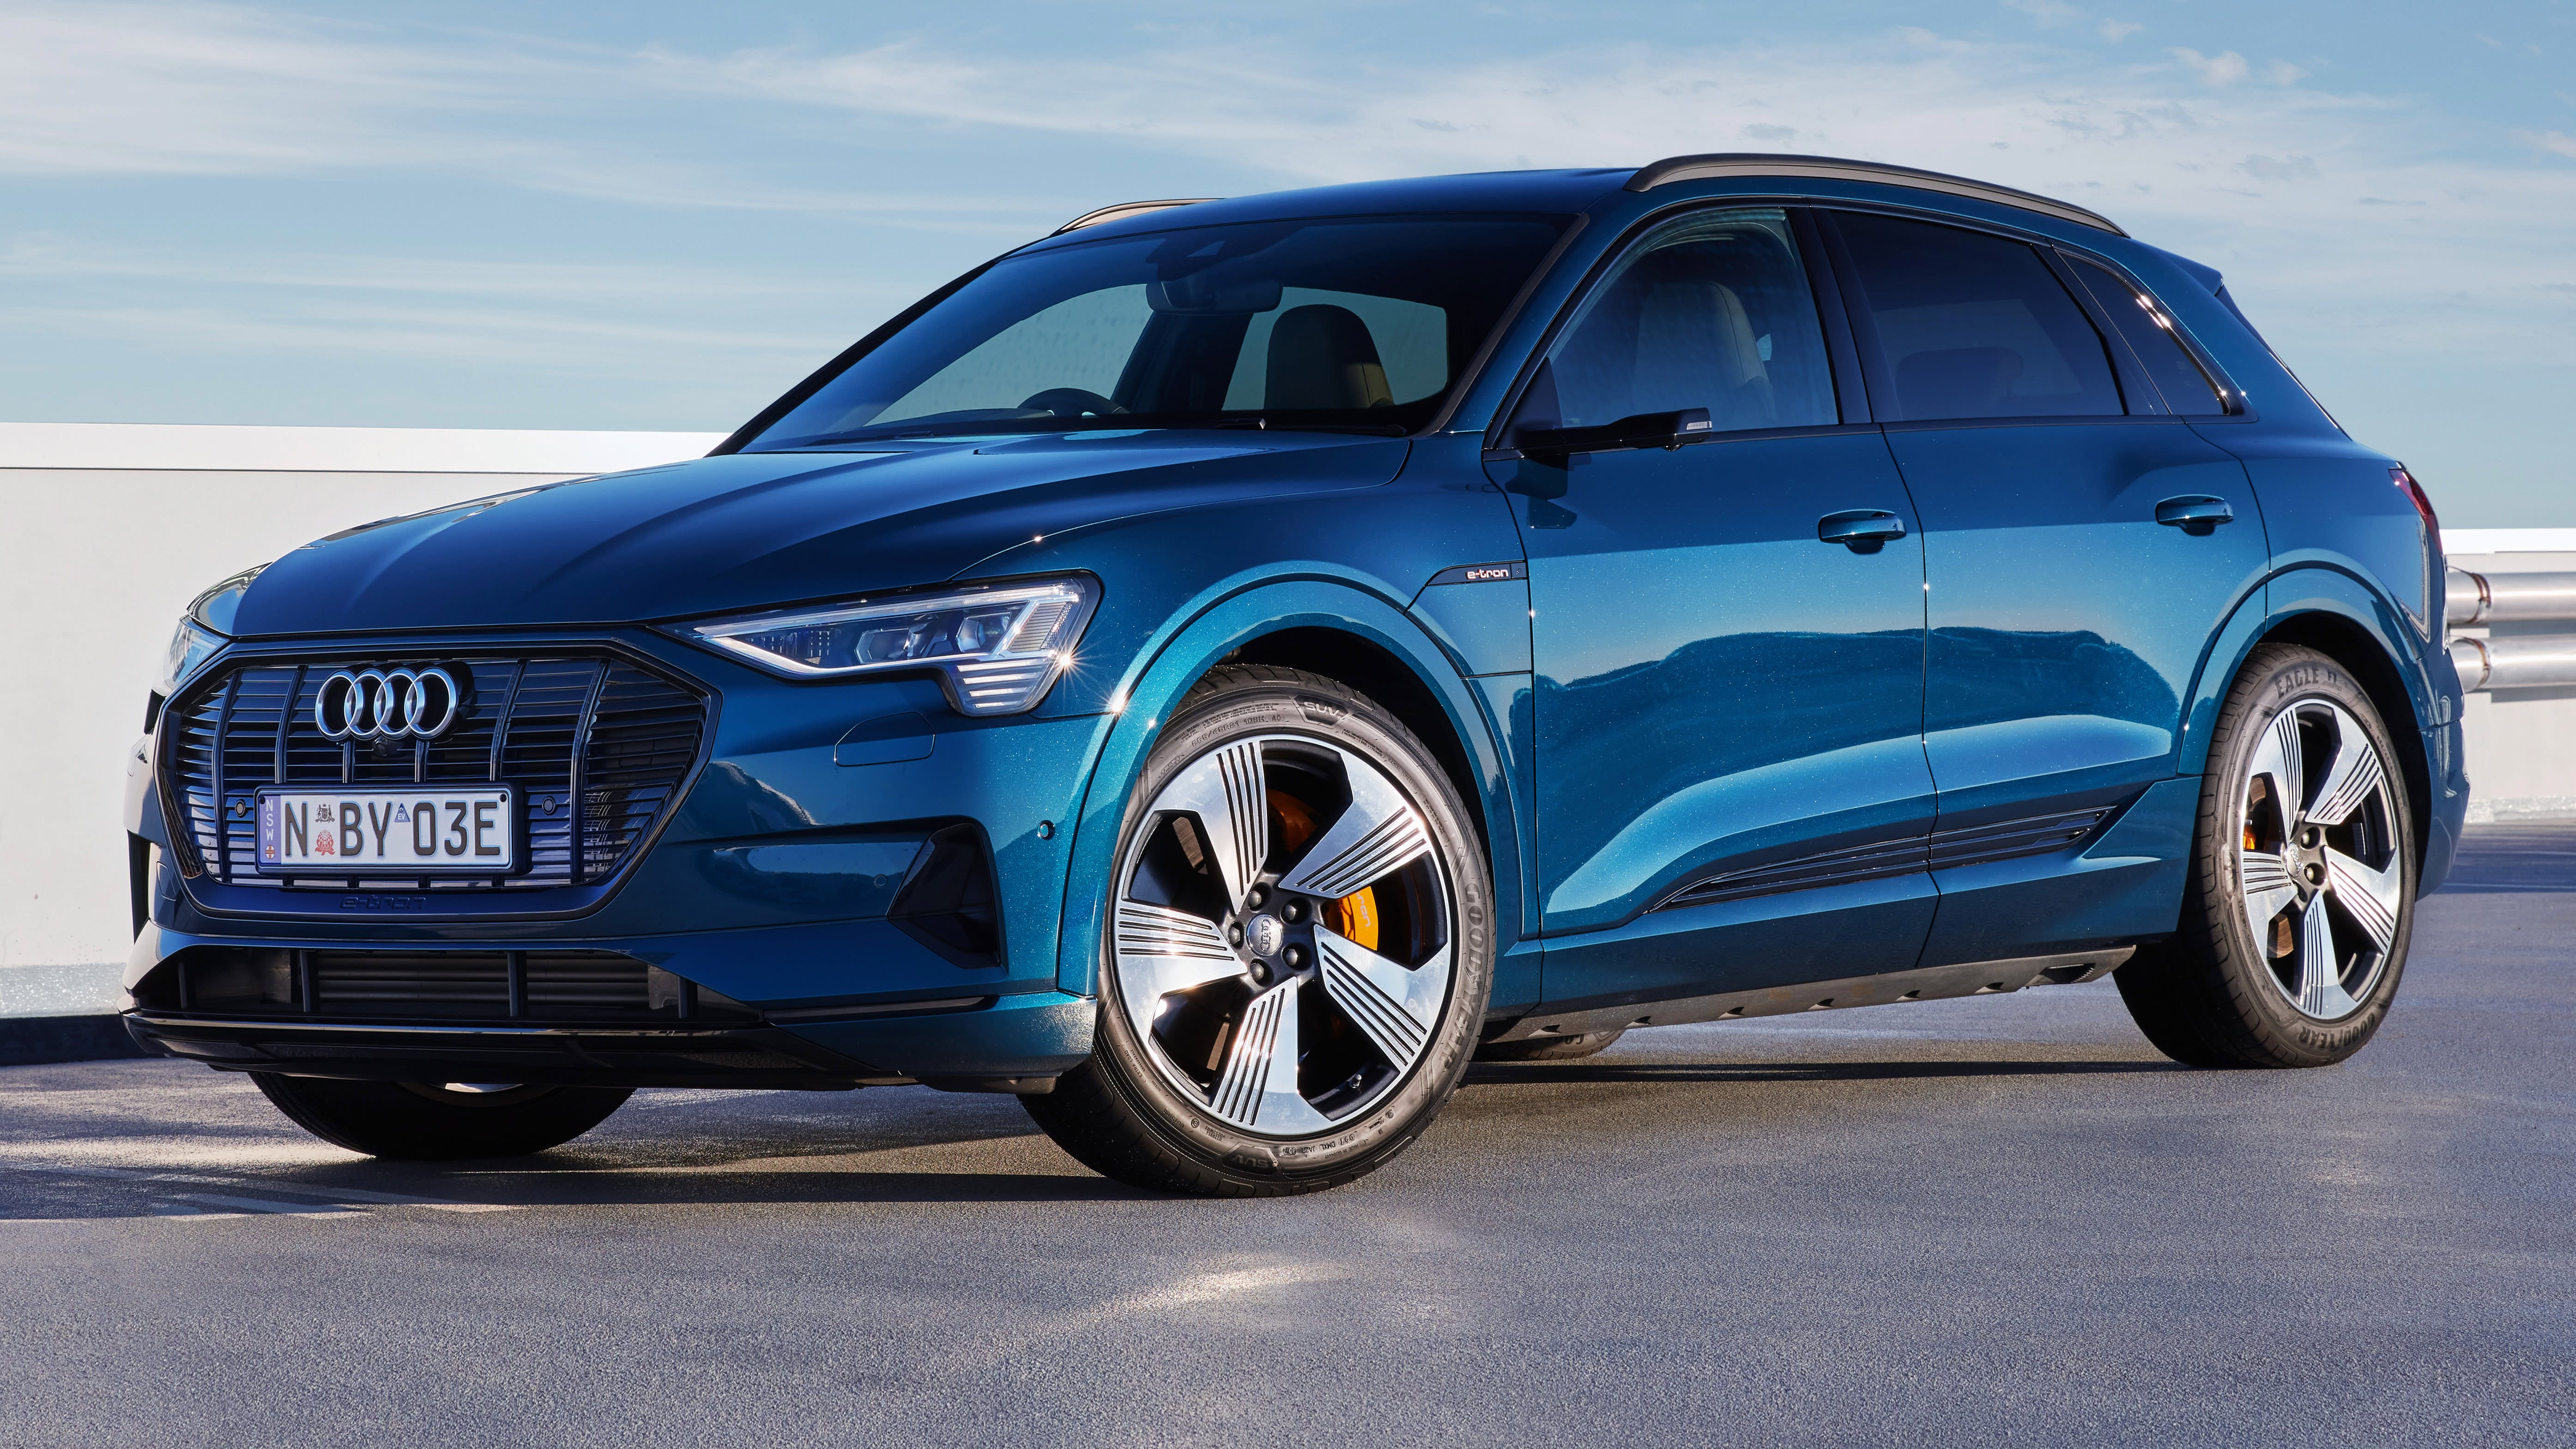 2020 Audi E Tron Suv And E Tron Sportback Price And Specs Update Caradvice